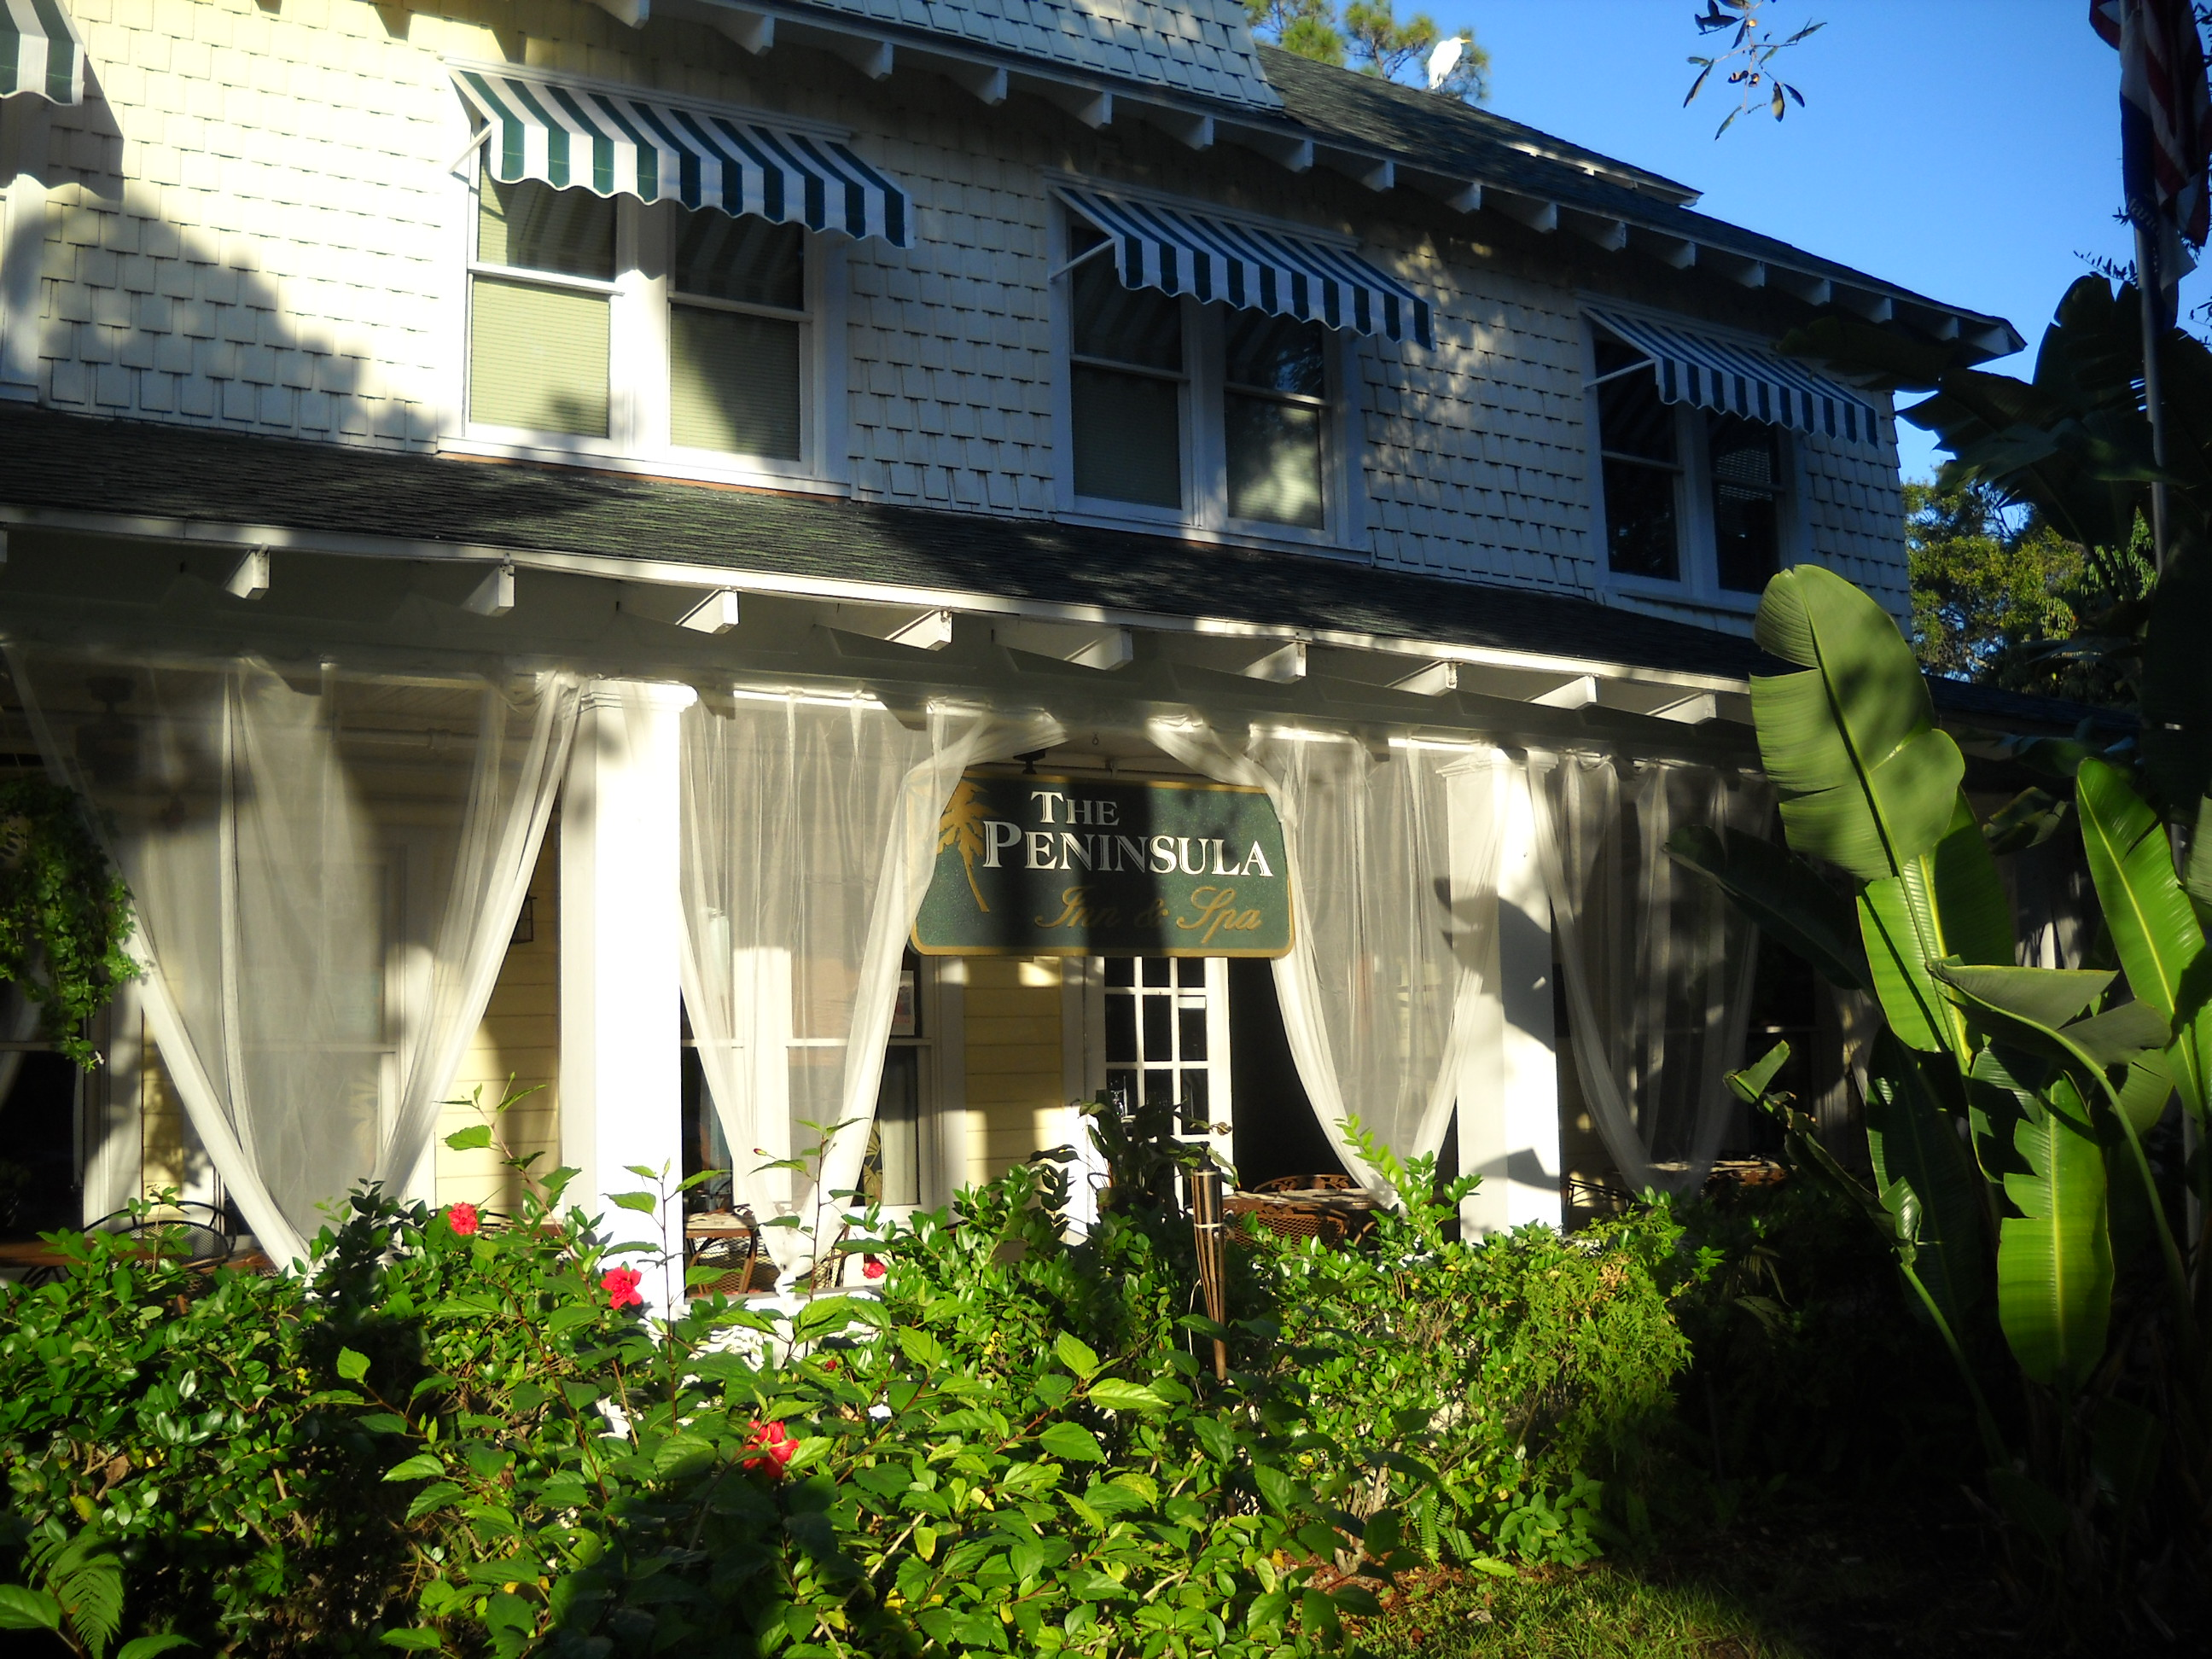 The Historic Peninsula Inn & Spa